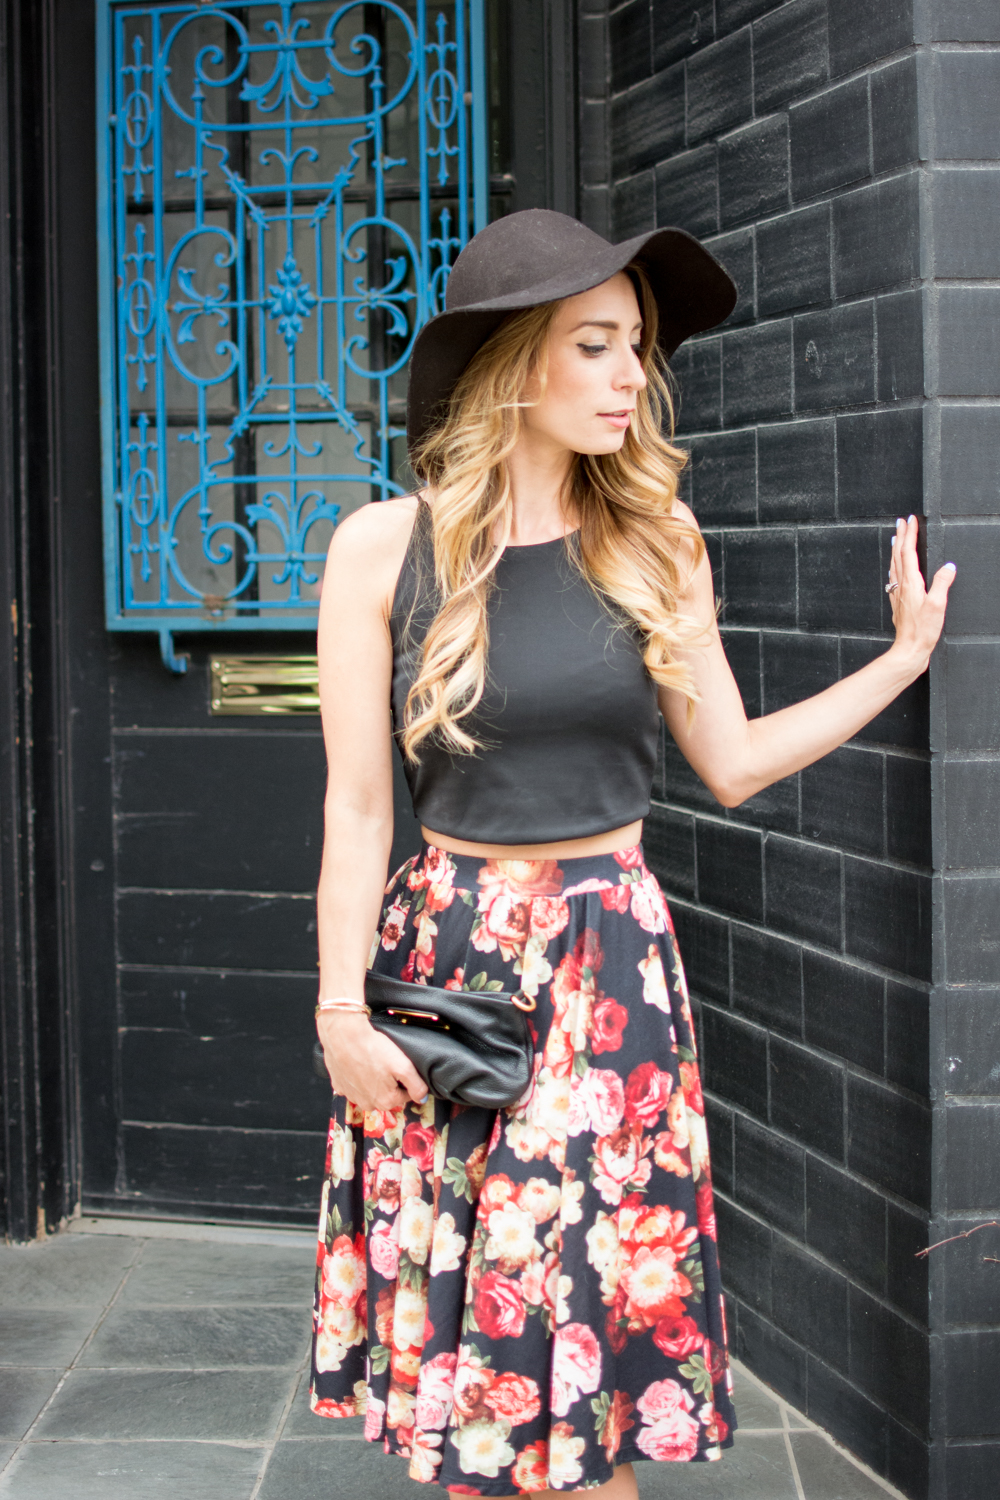 toronto fashion blogger in floral